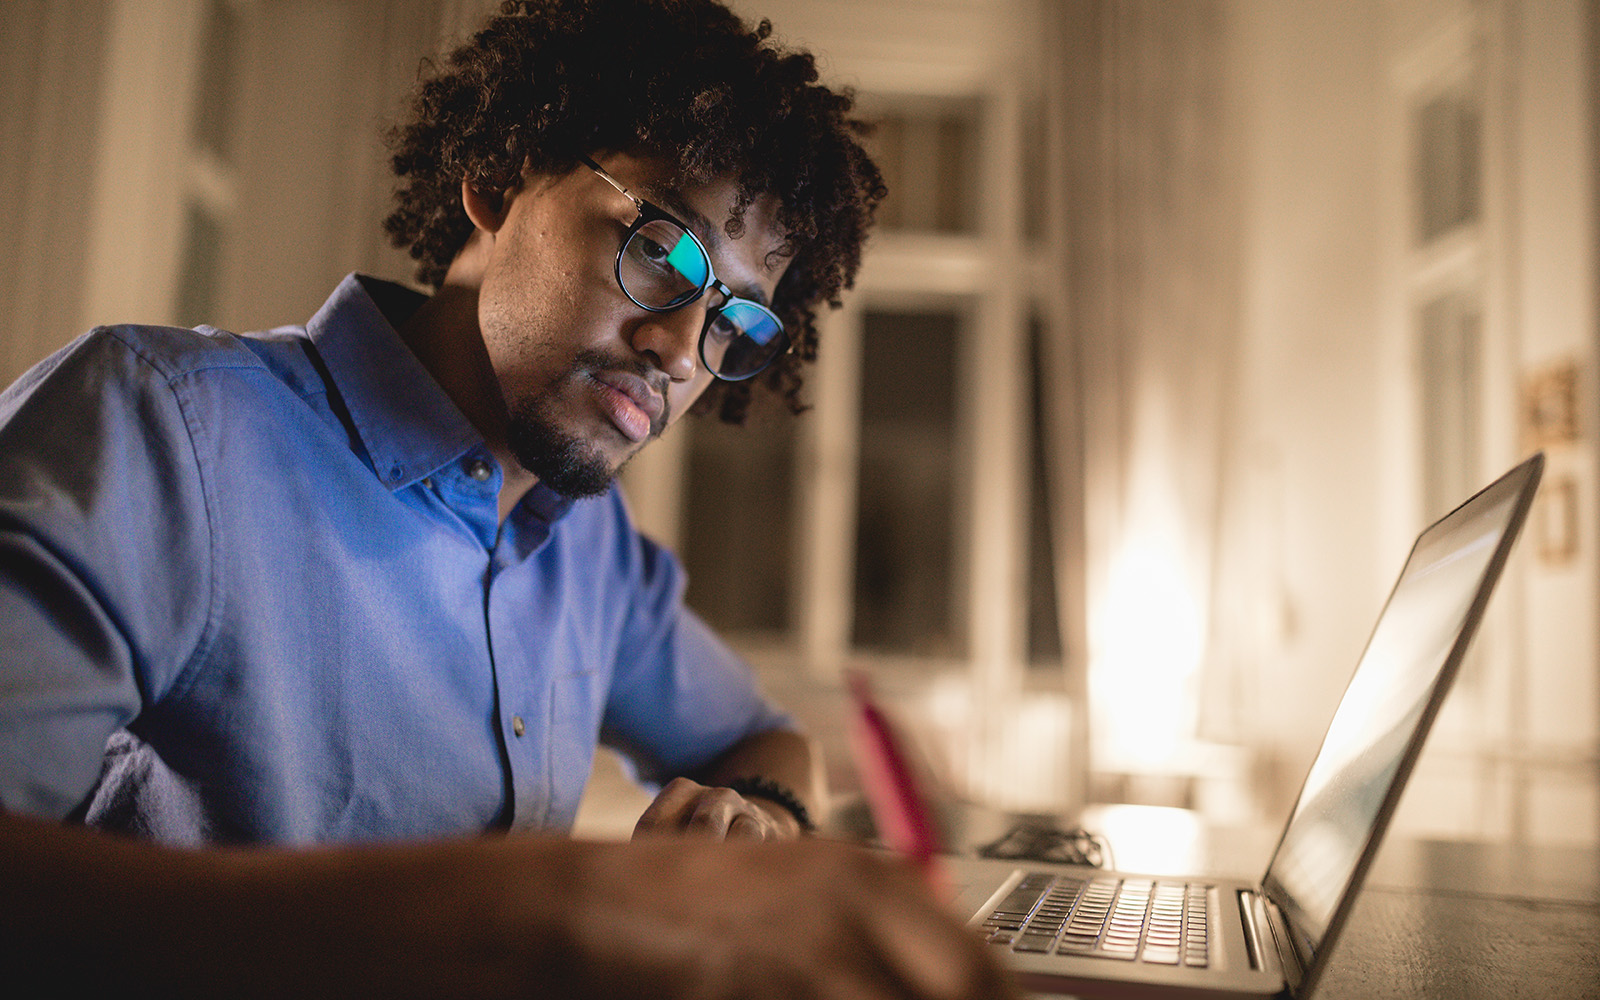 A black student studies at a laptop computer in a home office.